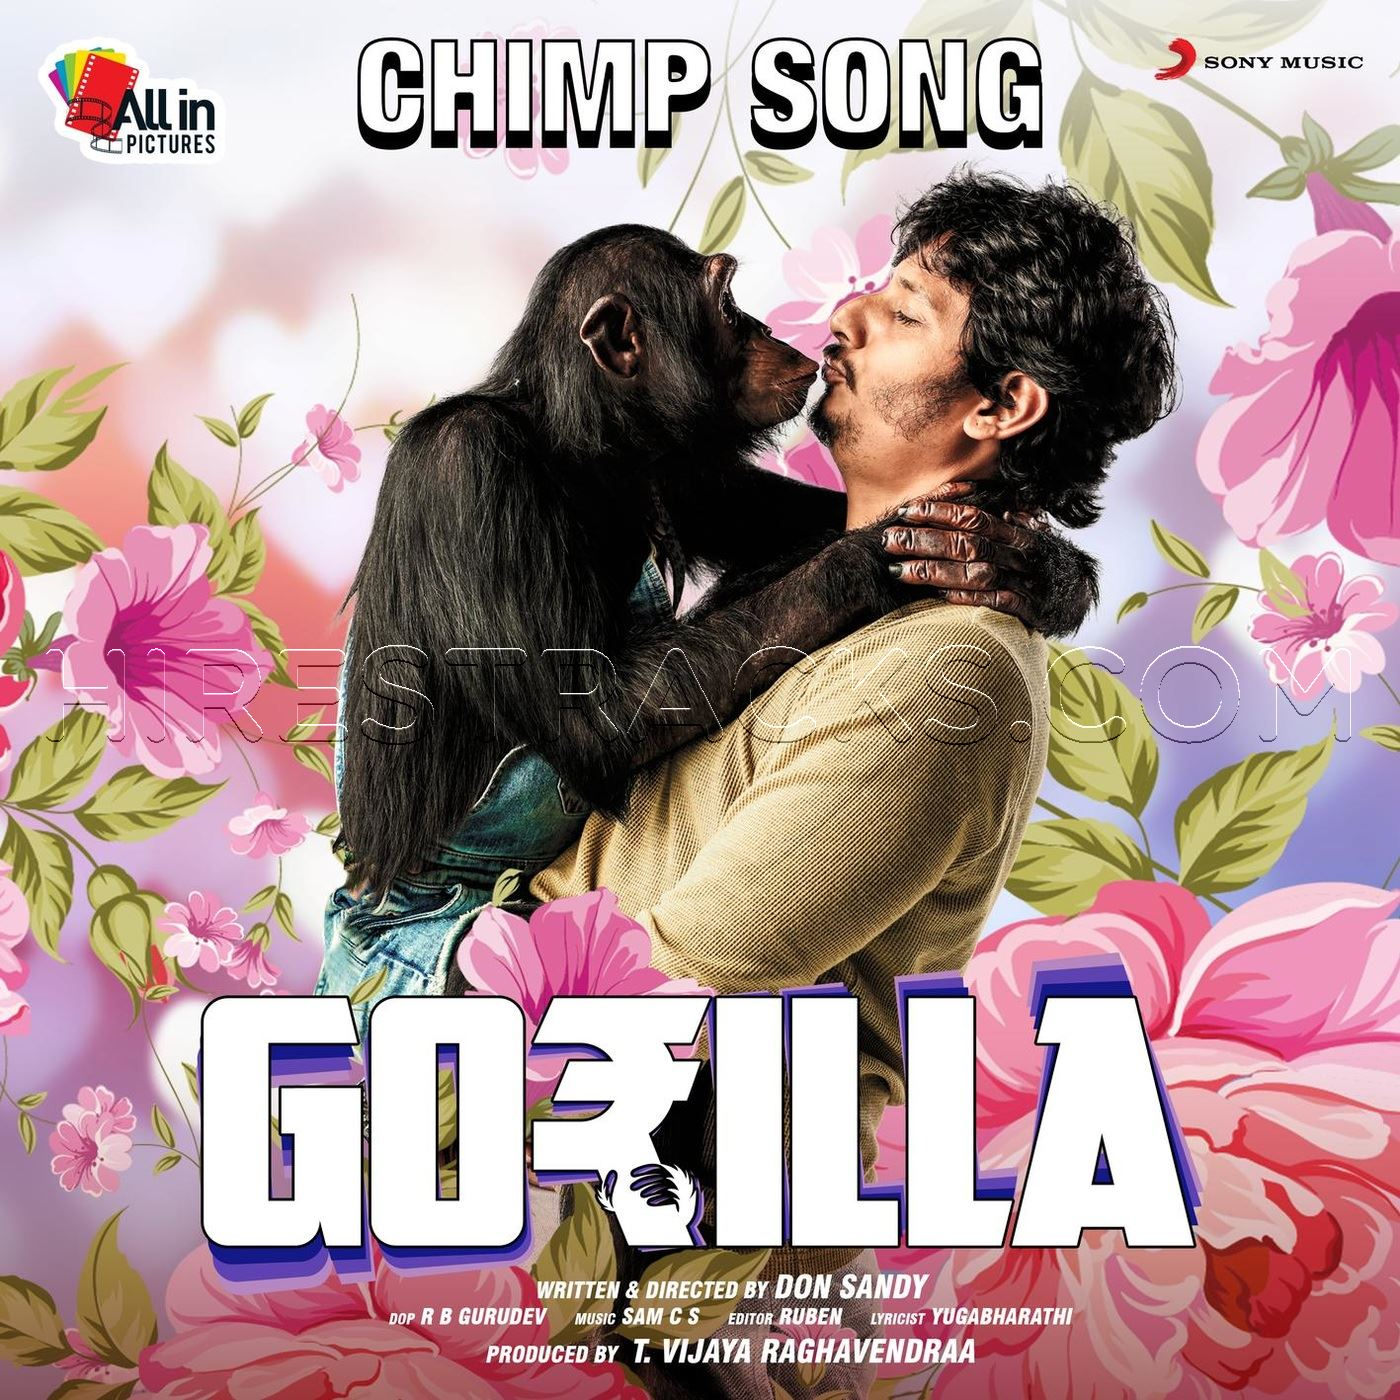 Chimp Song (From Gorilla) (2019)